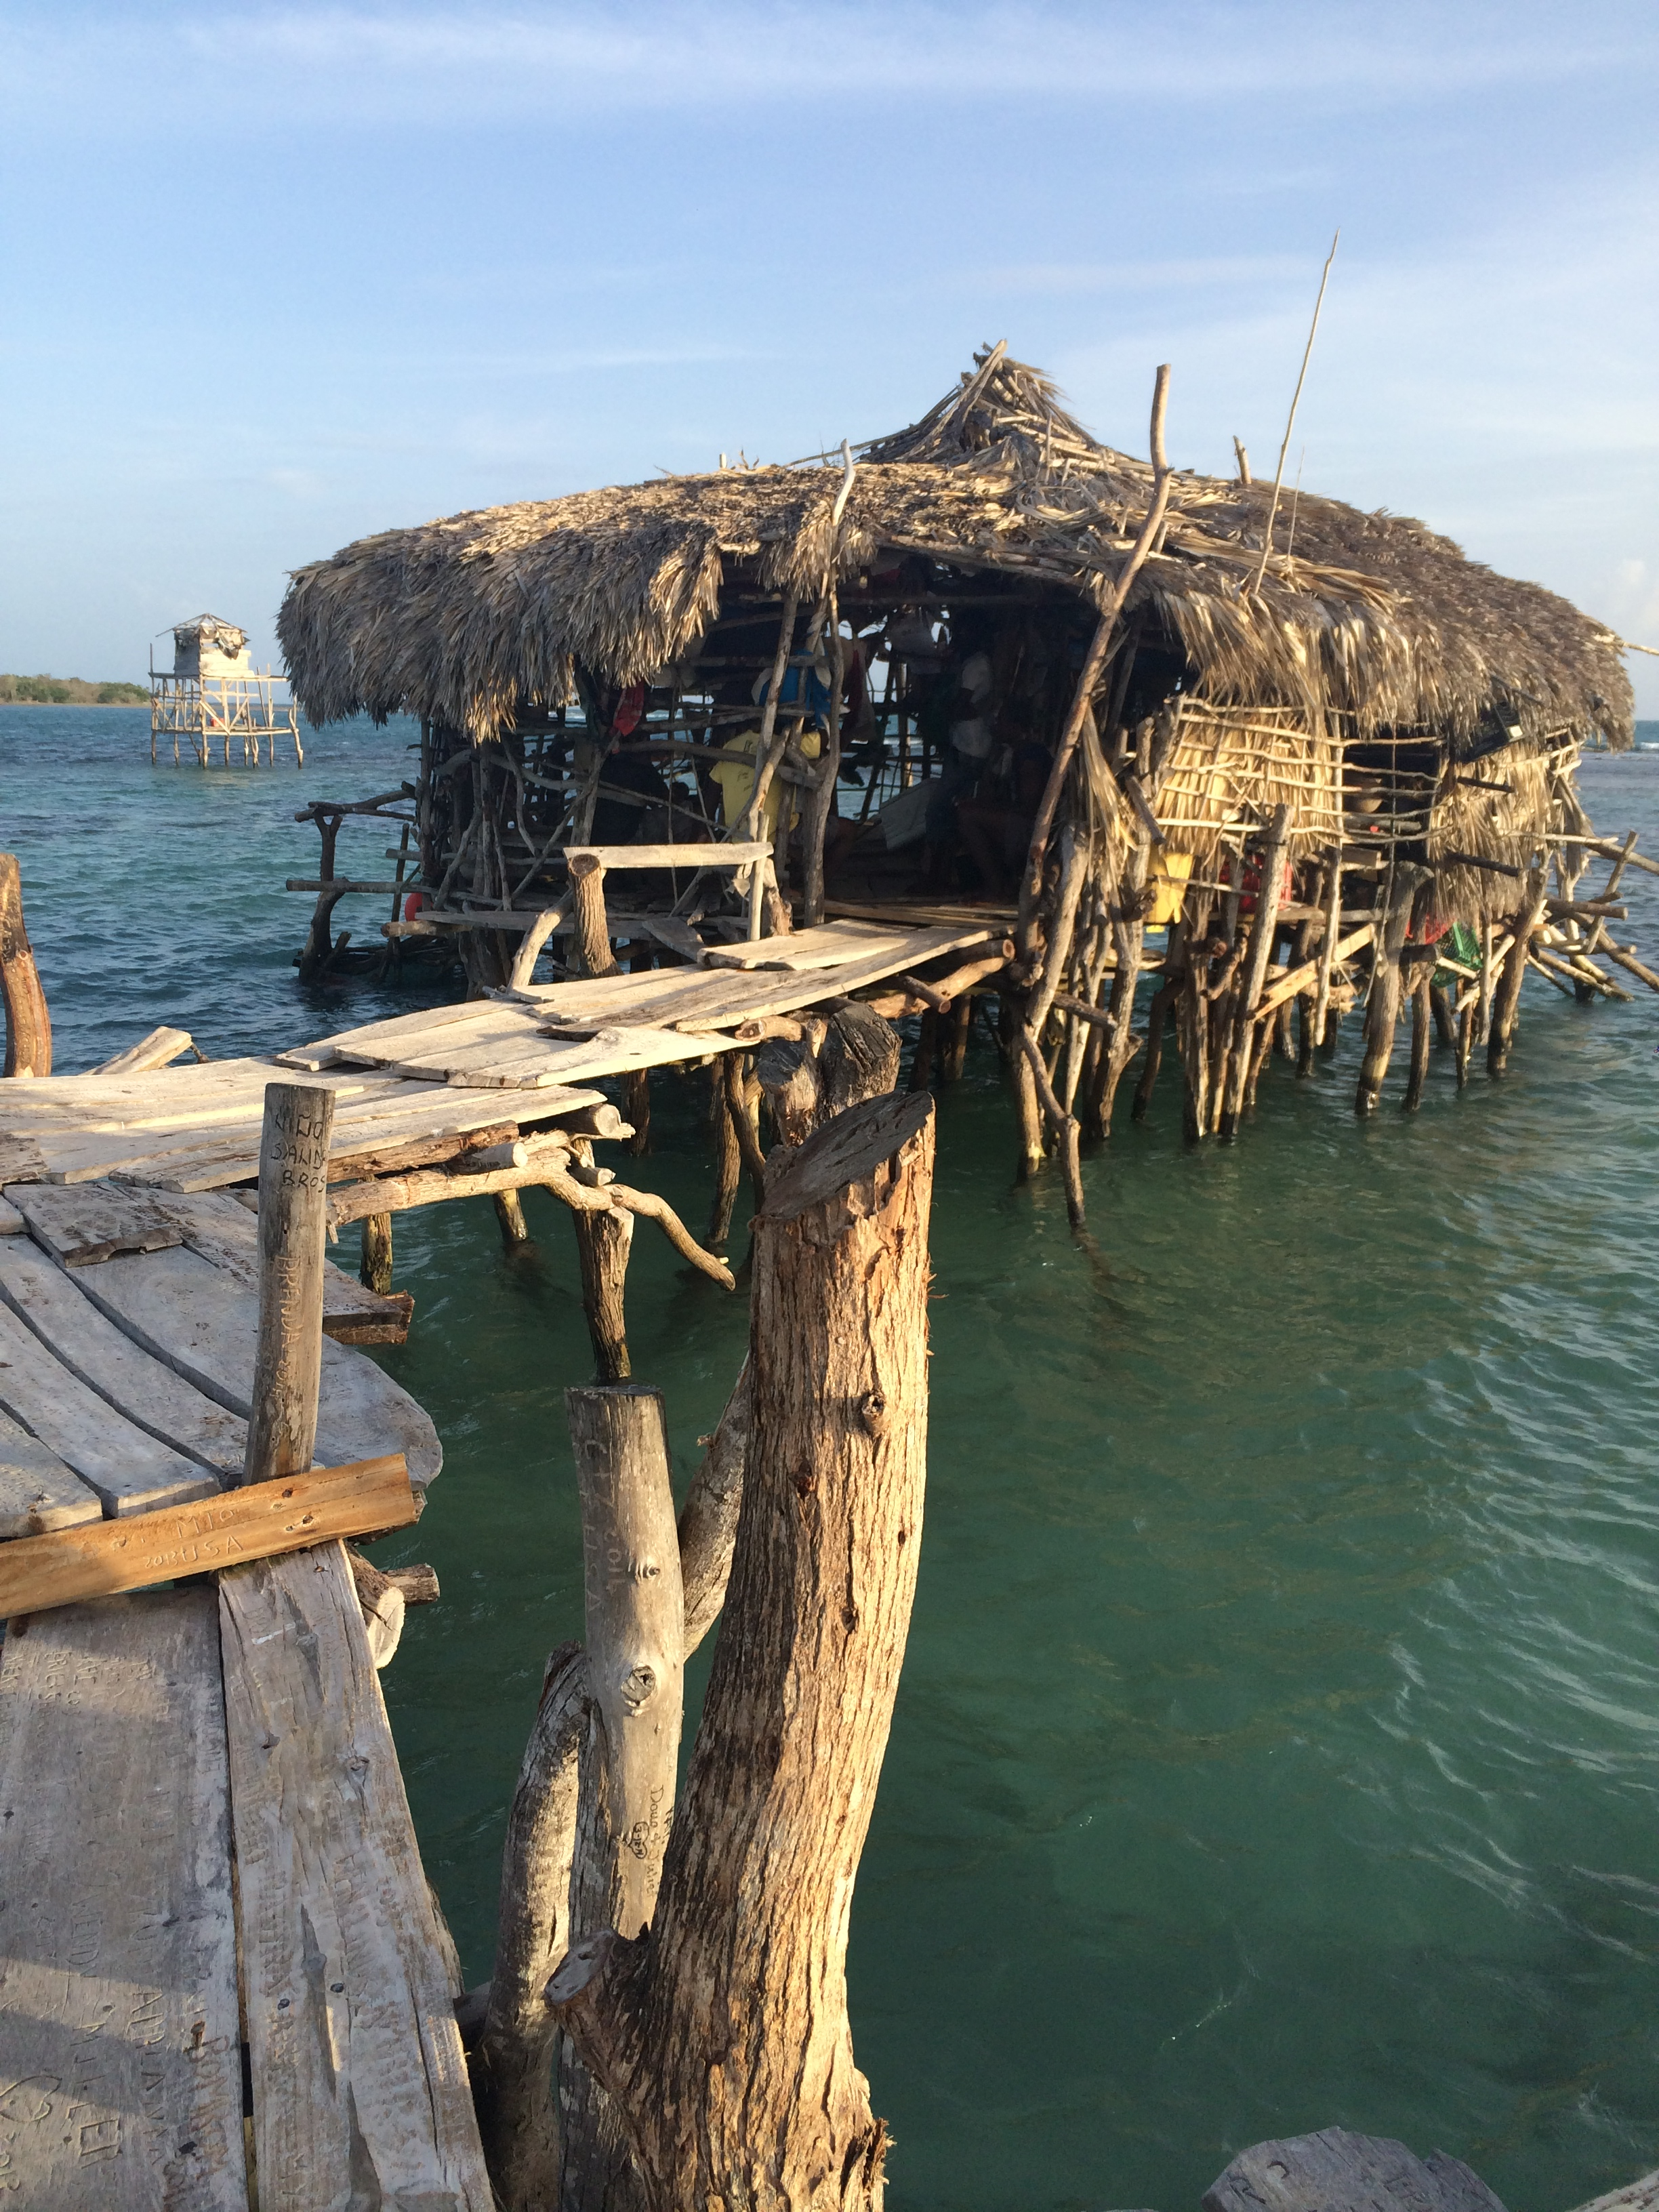 Floyds Pelican Bar - one of my favourite places to visit in Jamaica